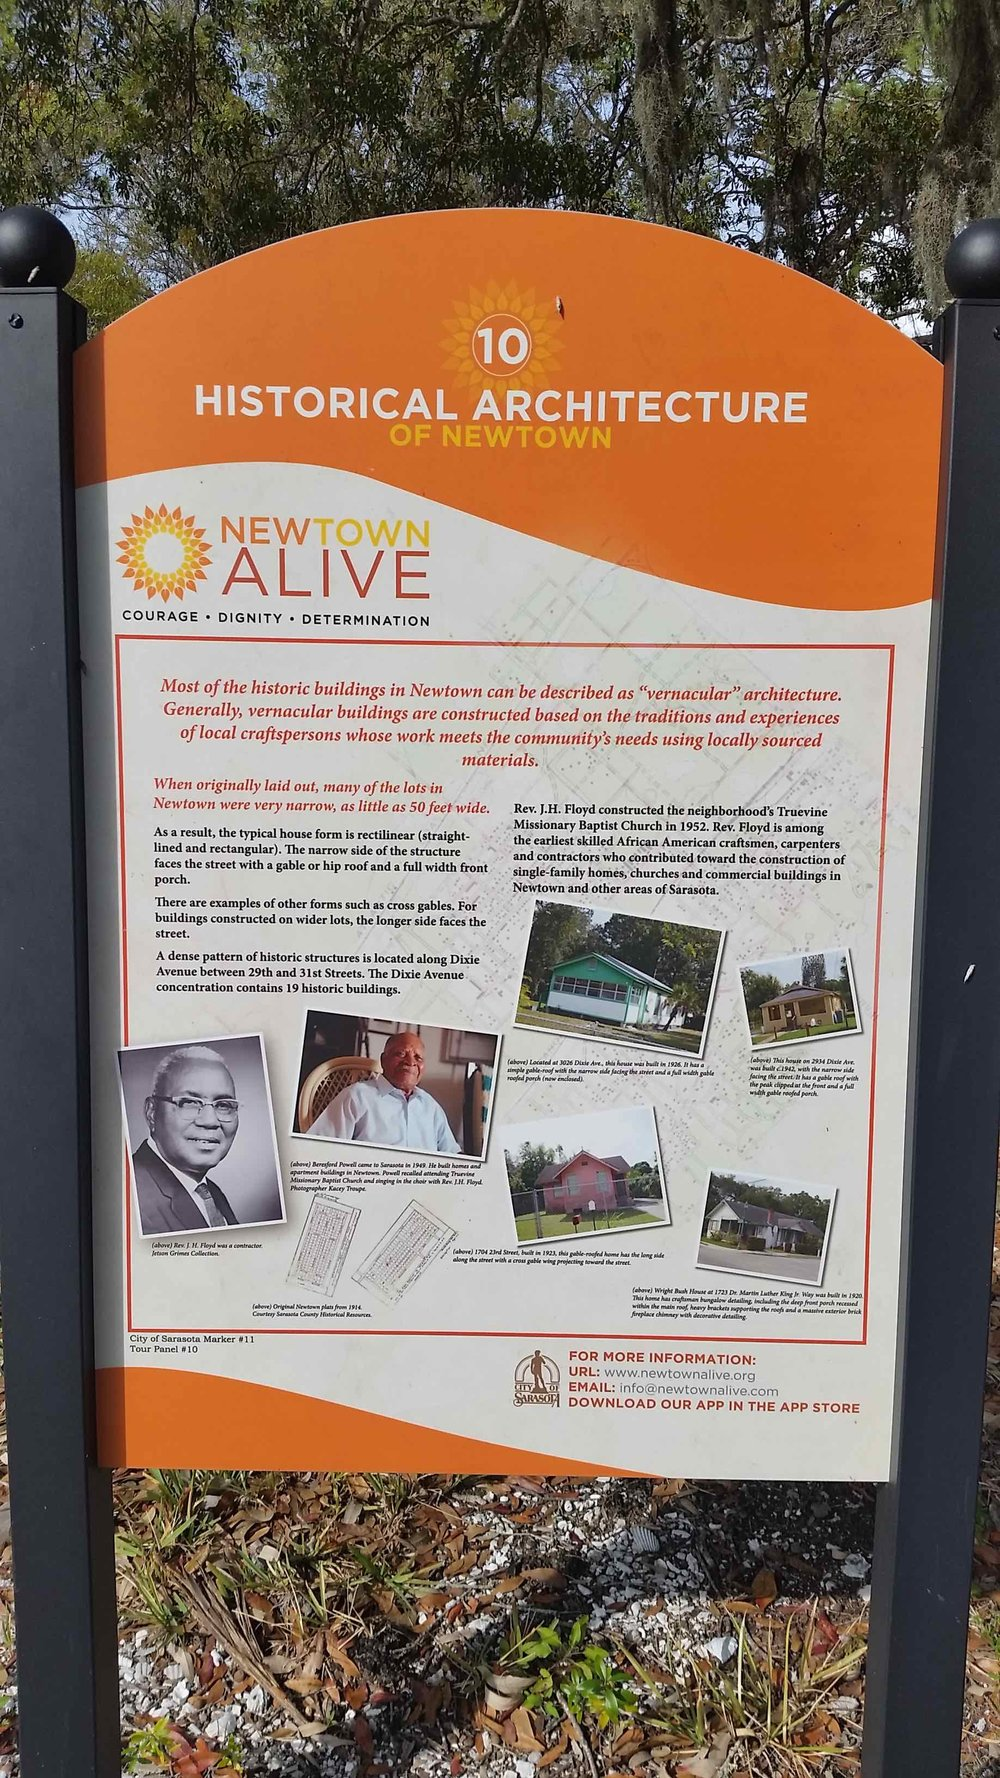 A recent city grant  funded an effort  to preserve much of the neighborhood's oral history and create a walking tour with interpretive signs.